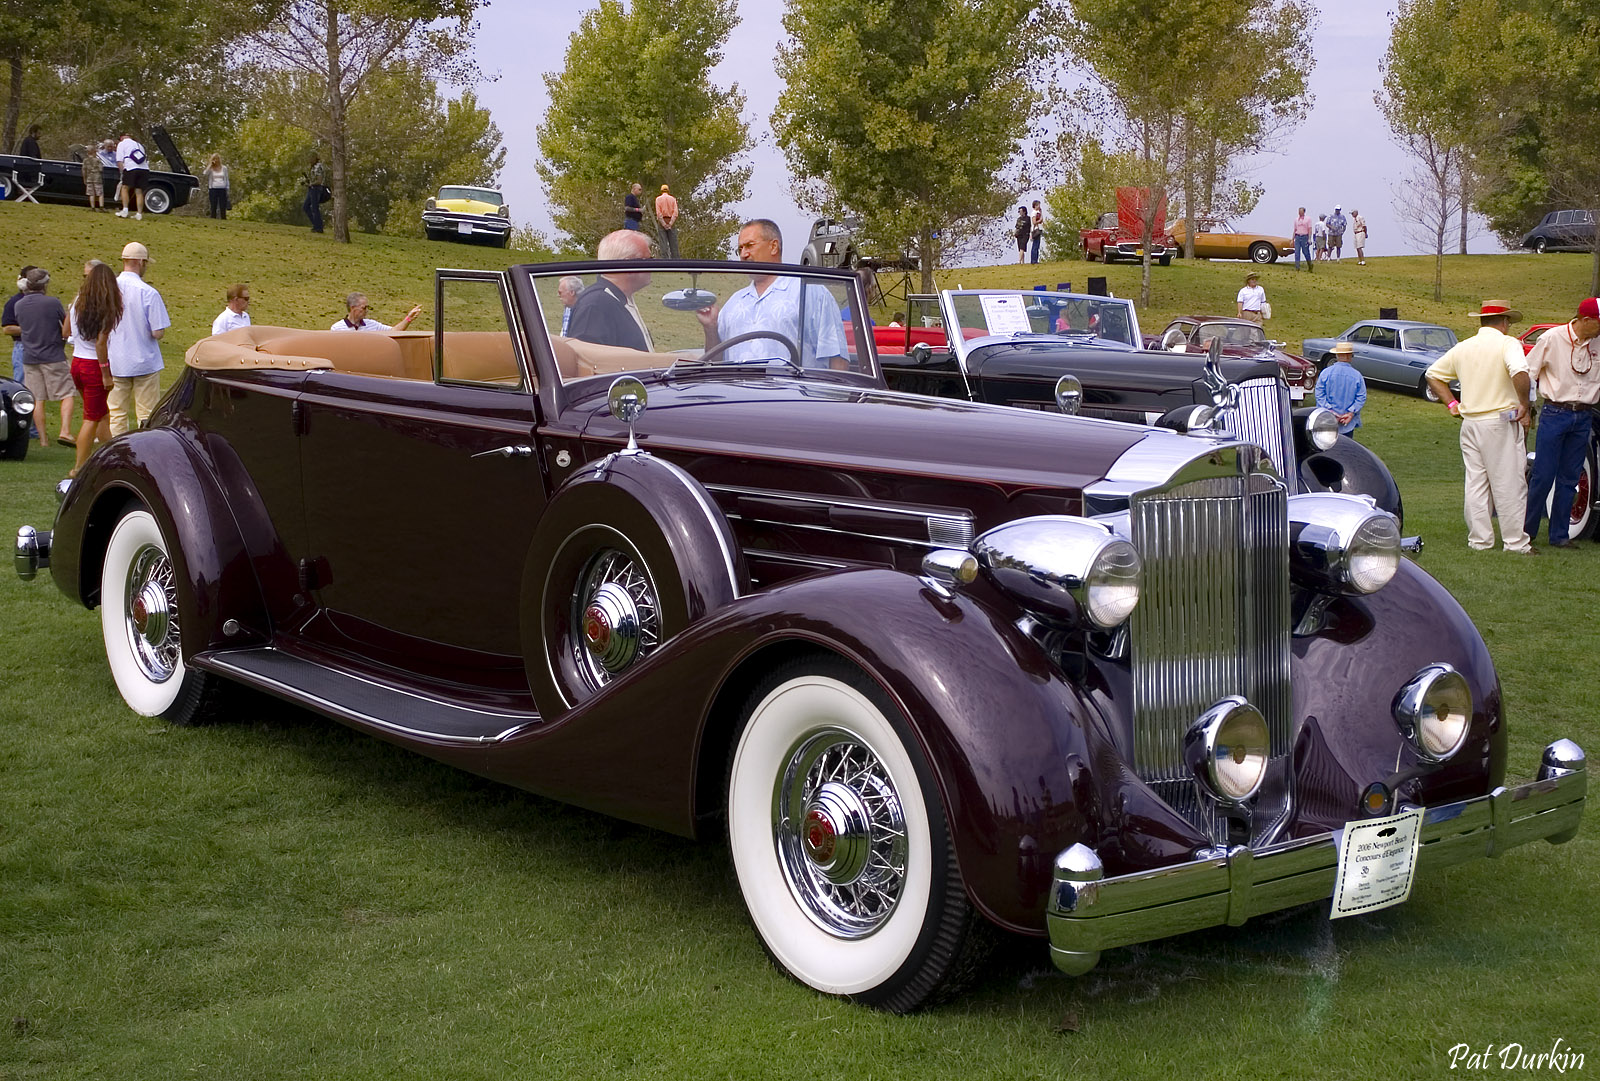 1935 Packard 12 Convertible Victoria by Dietrich - brown - fvr